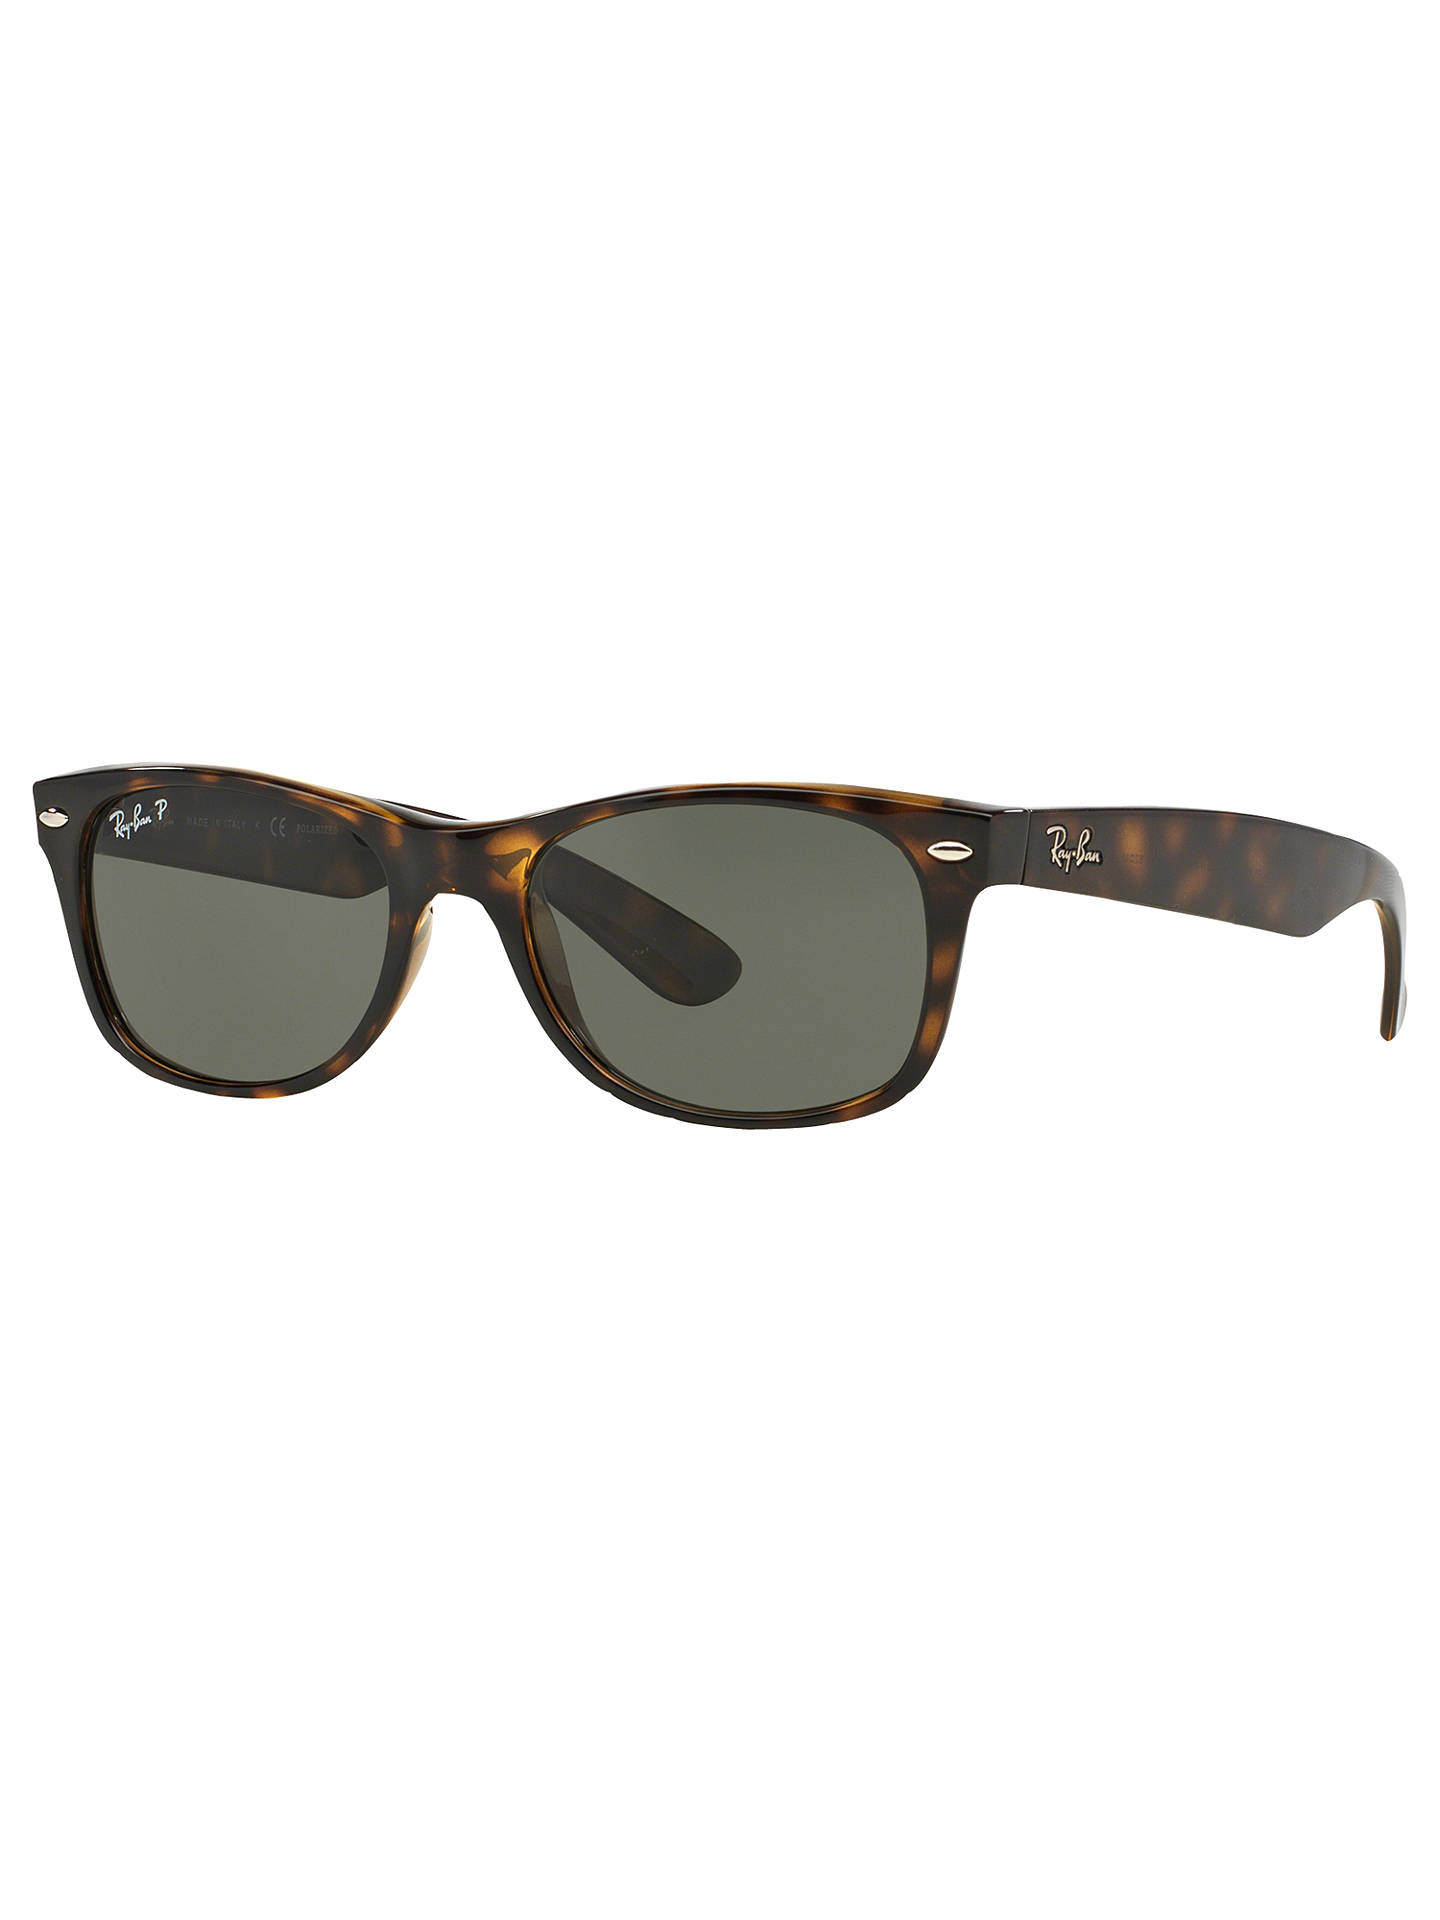 BuyRay-Ban RB2132 Unisex New Wayfarer Polarised Sunglasses, Tortoise Online at johnlewis.com